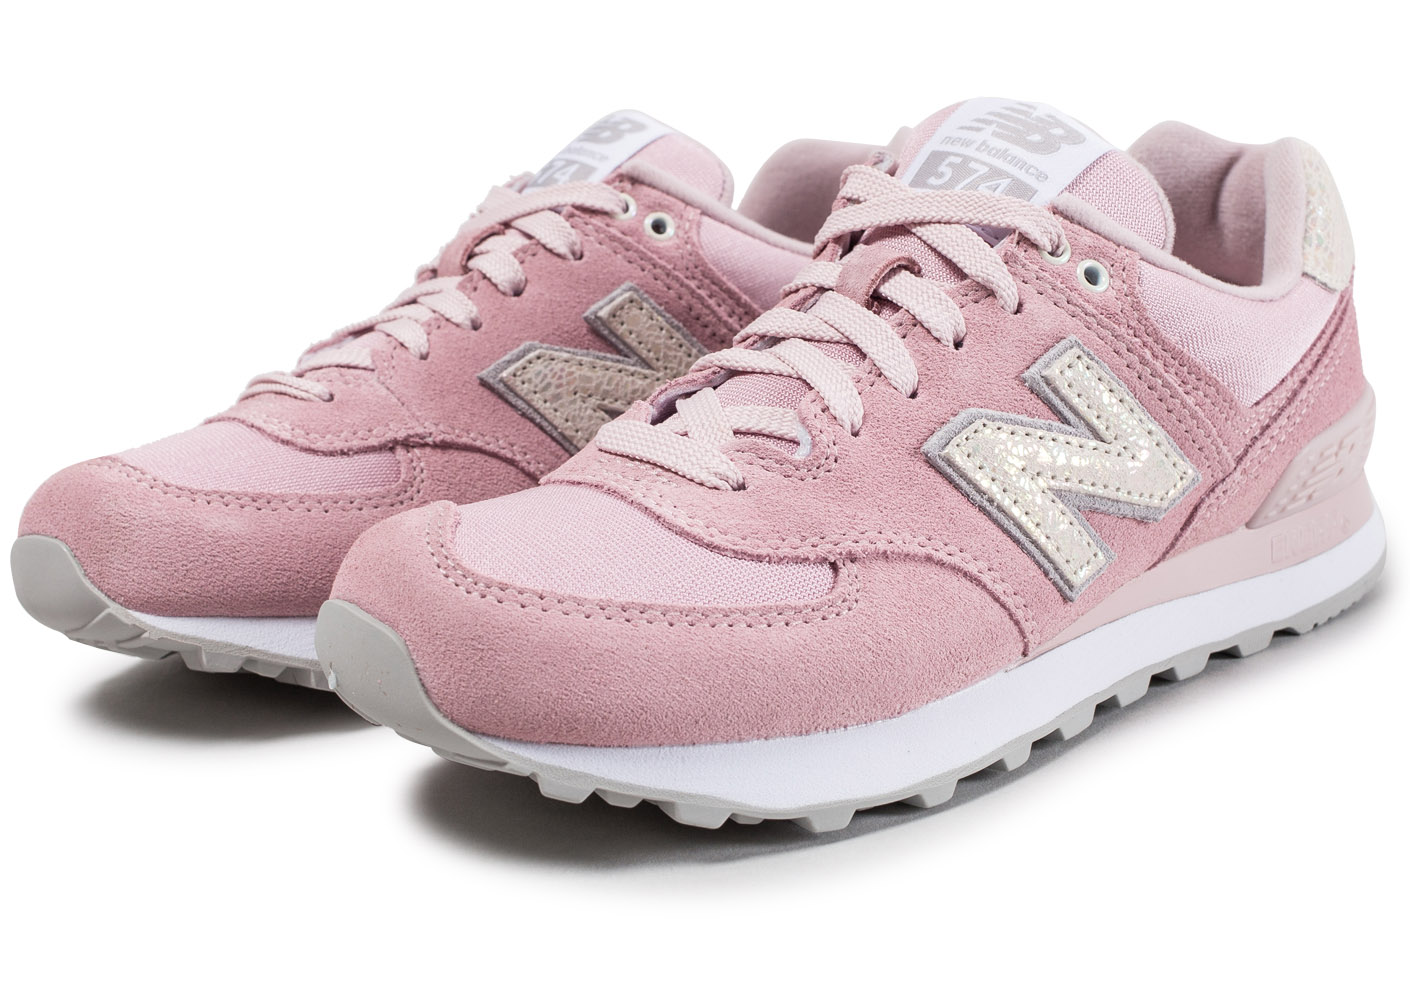 44745644f62e New Balance Wl574 Cic Rose Baskets Running Femme NGq54h - infirmary ...